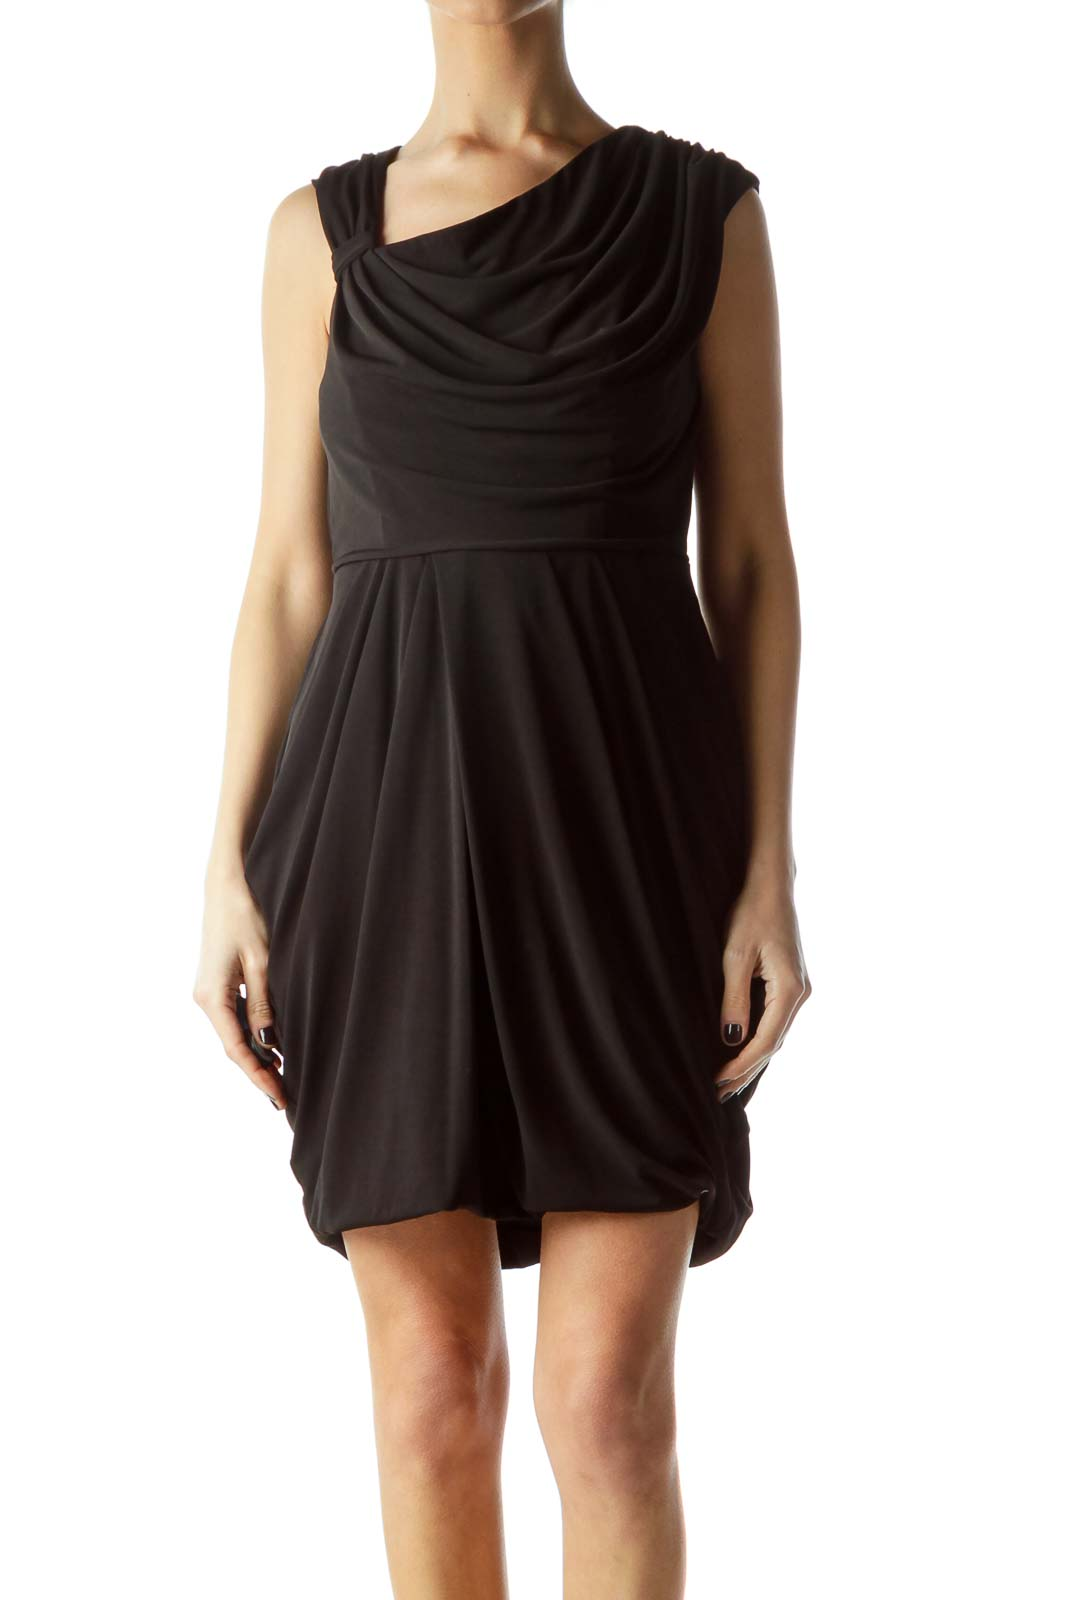 Black Elastic Stretch Cocktail Dress